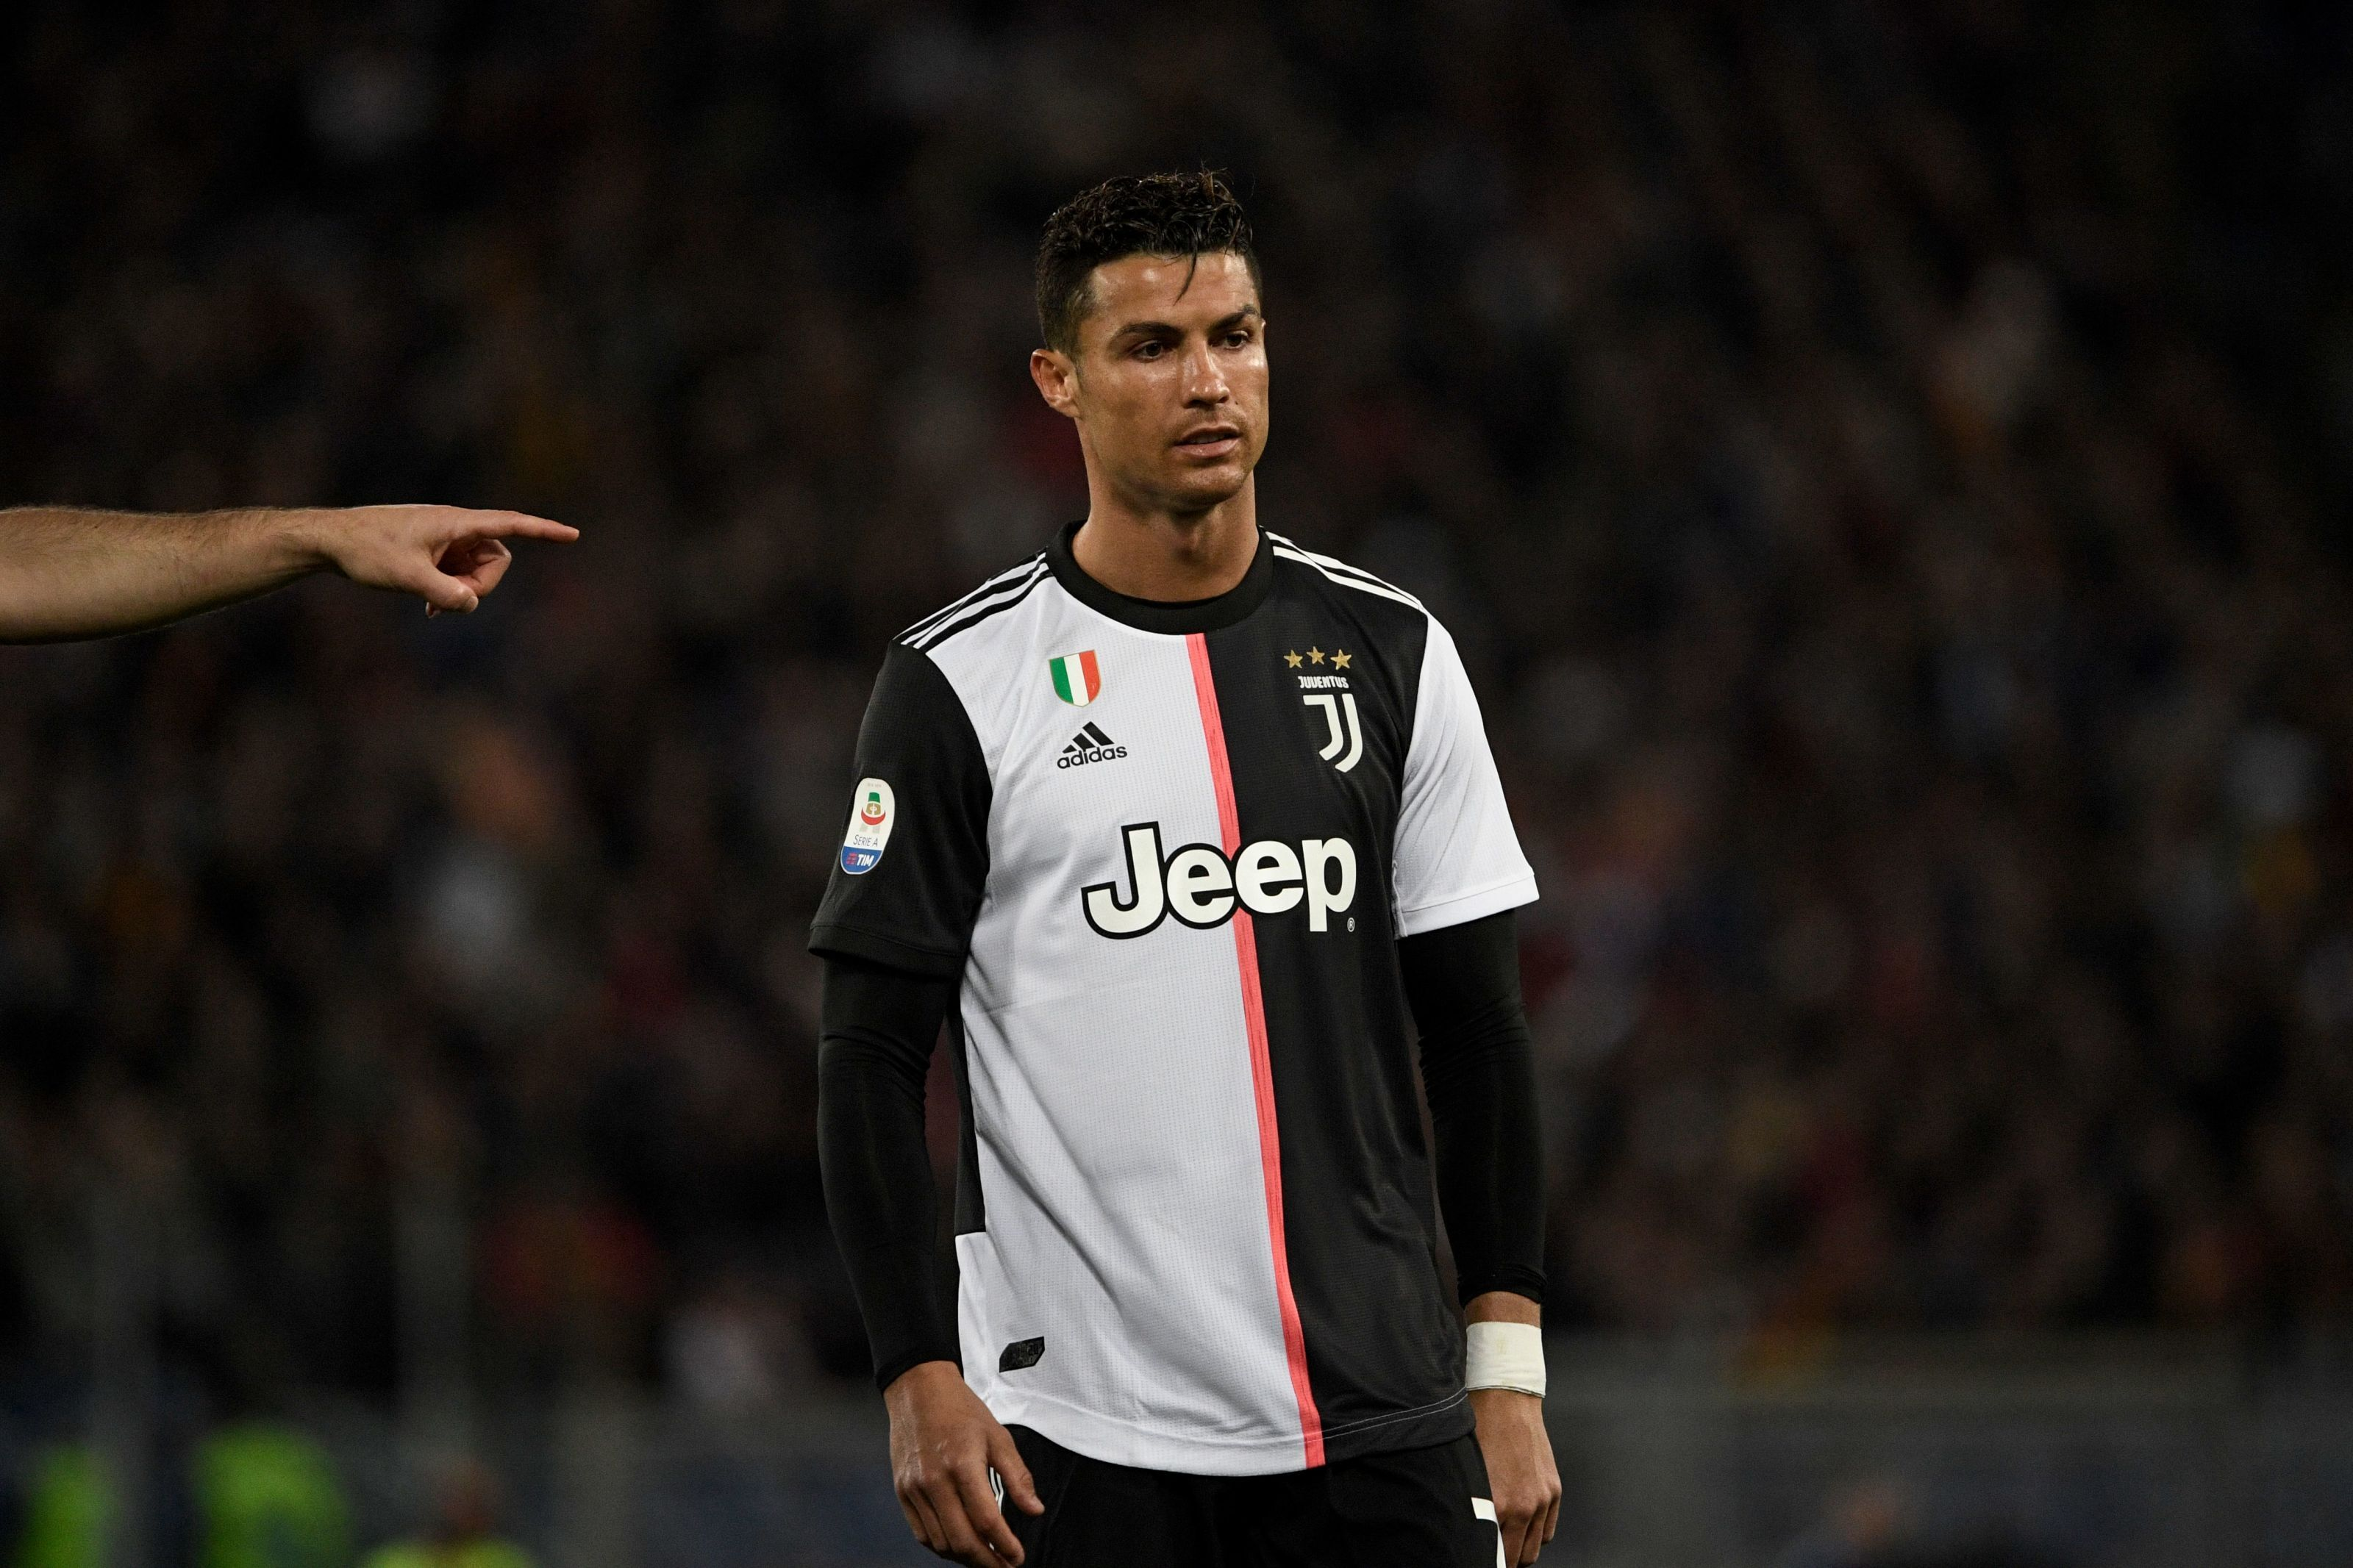 Lionel Messi wants Cristiano Ronaldo's Juventus teammate at Barcelona